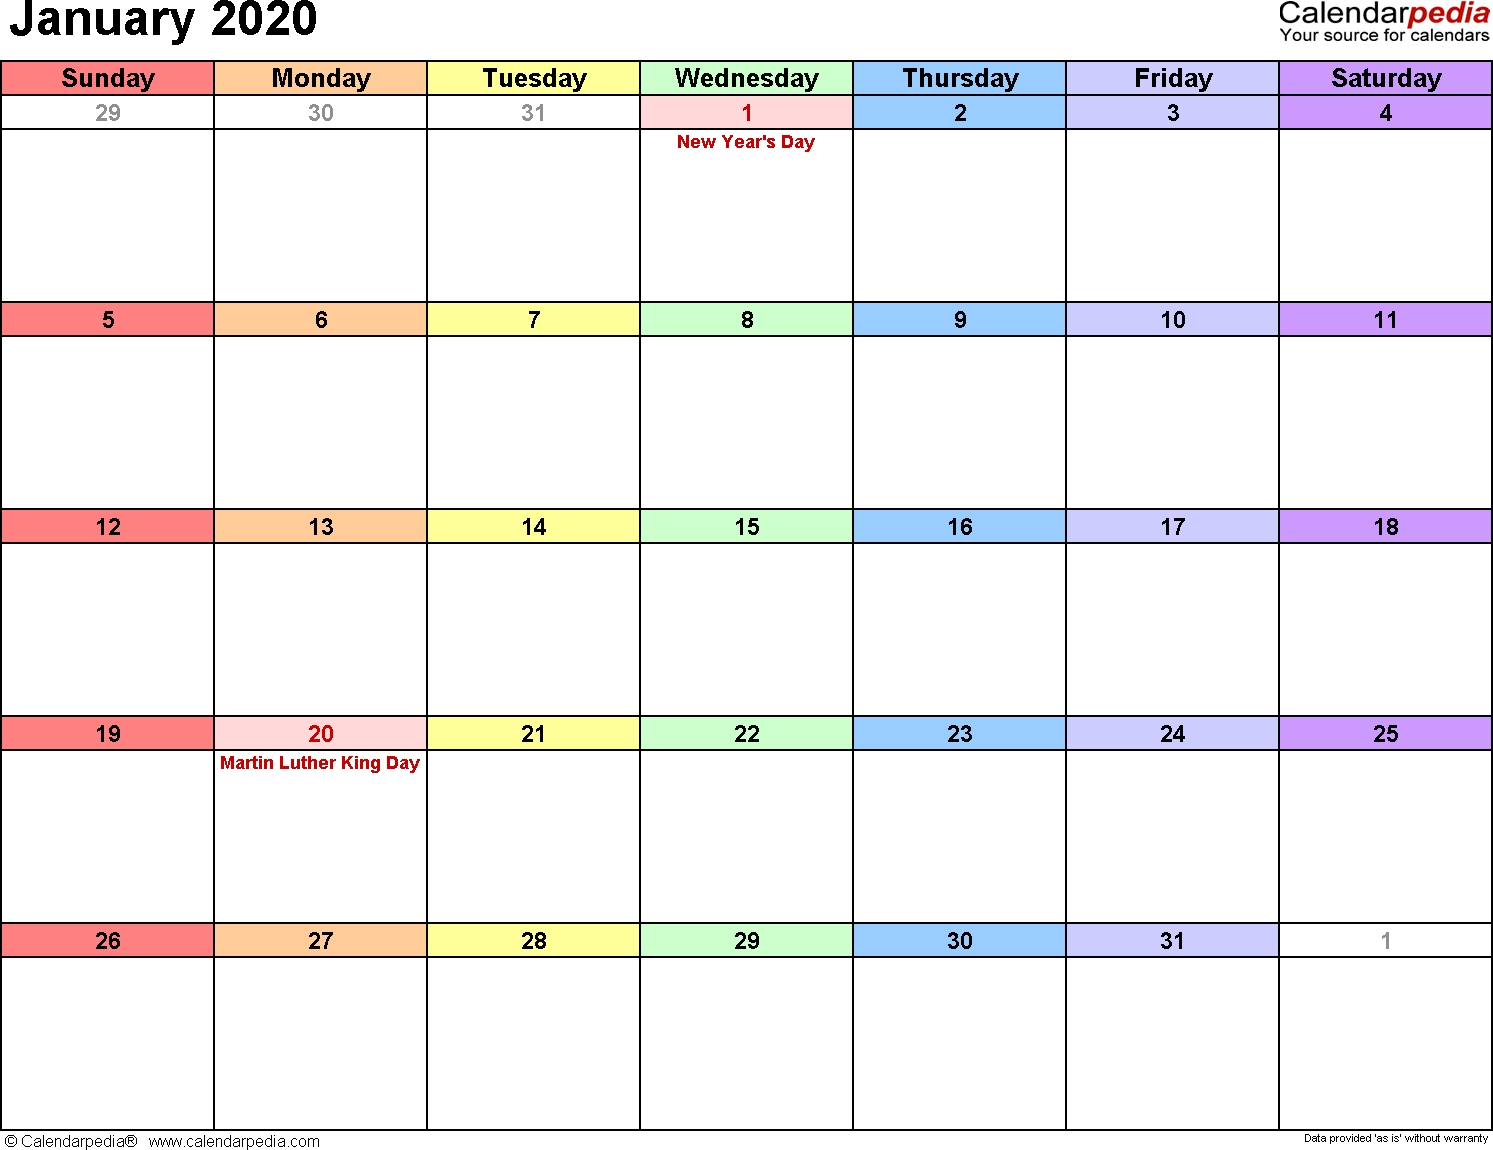 January 2020 Calendars For Word, Excel & Pdf-January 2020 Calendar Of Events